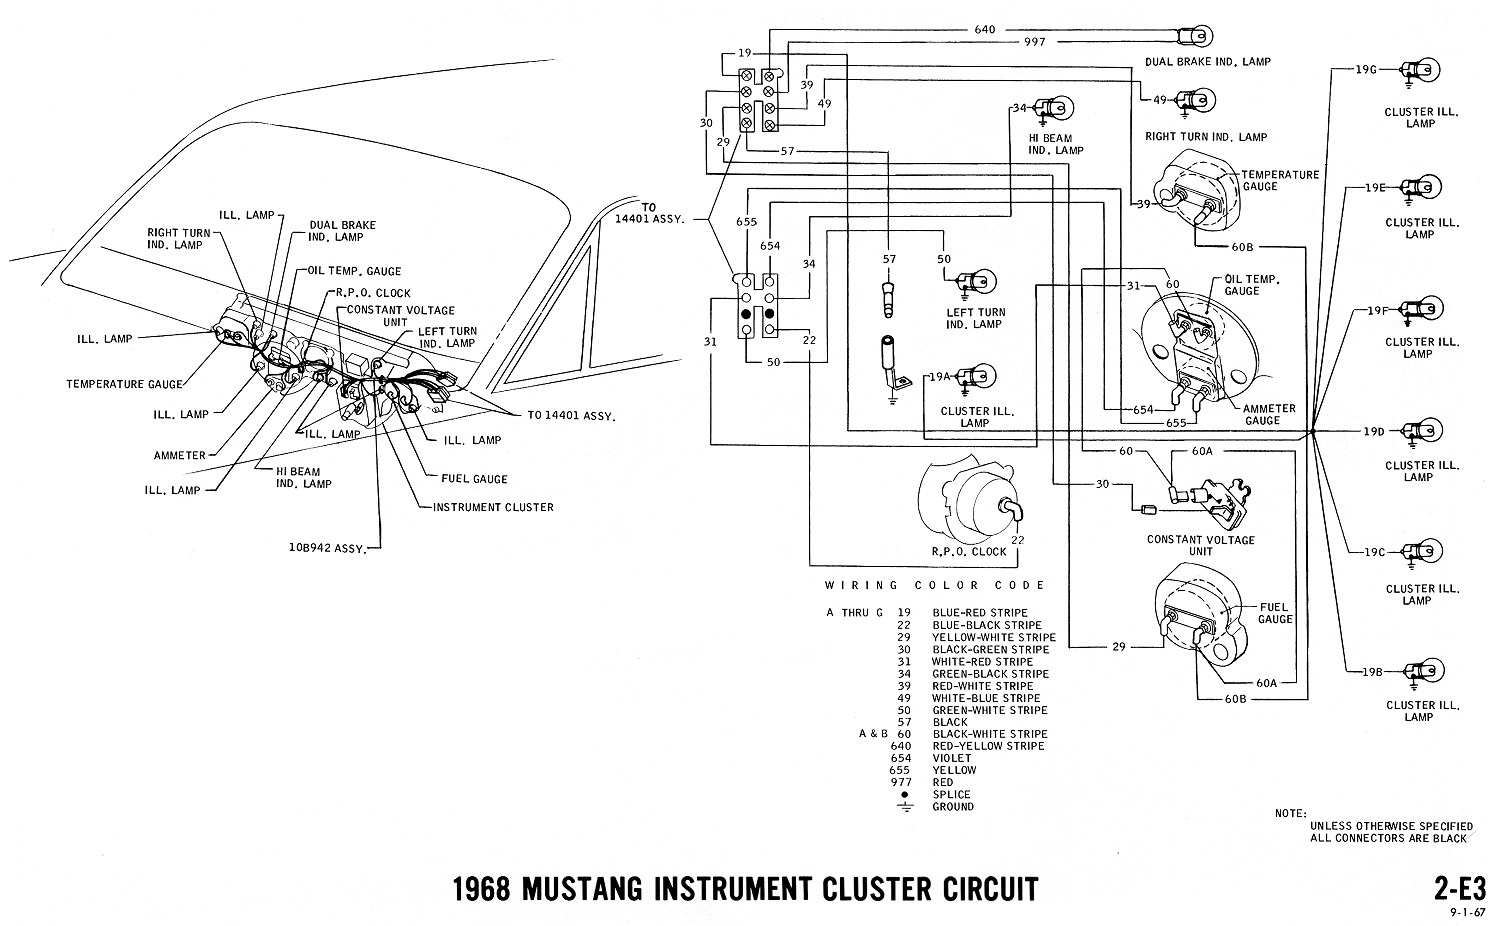 1968 mustang wiring diagram instruments 1968 mustang wiring diagrams and vacuum schematics average joe 1967 mustang wiring diagram at alyssarenee.co